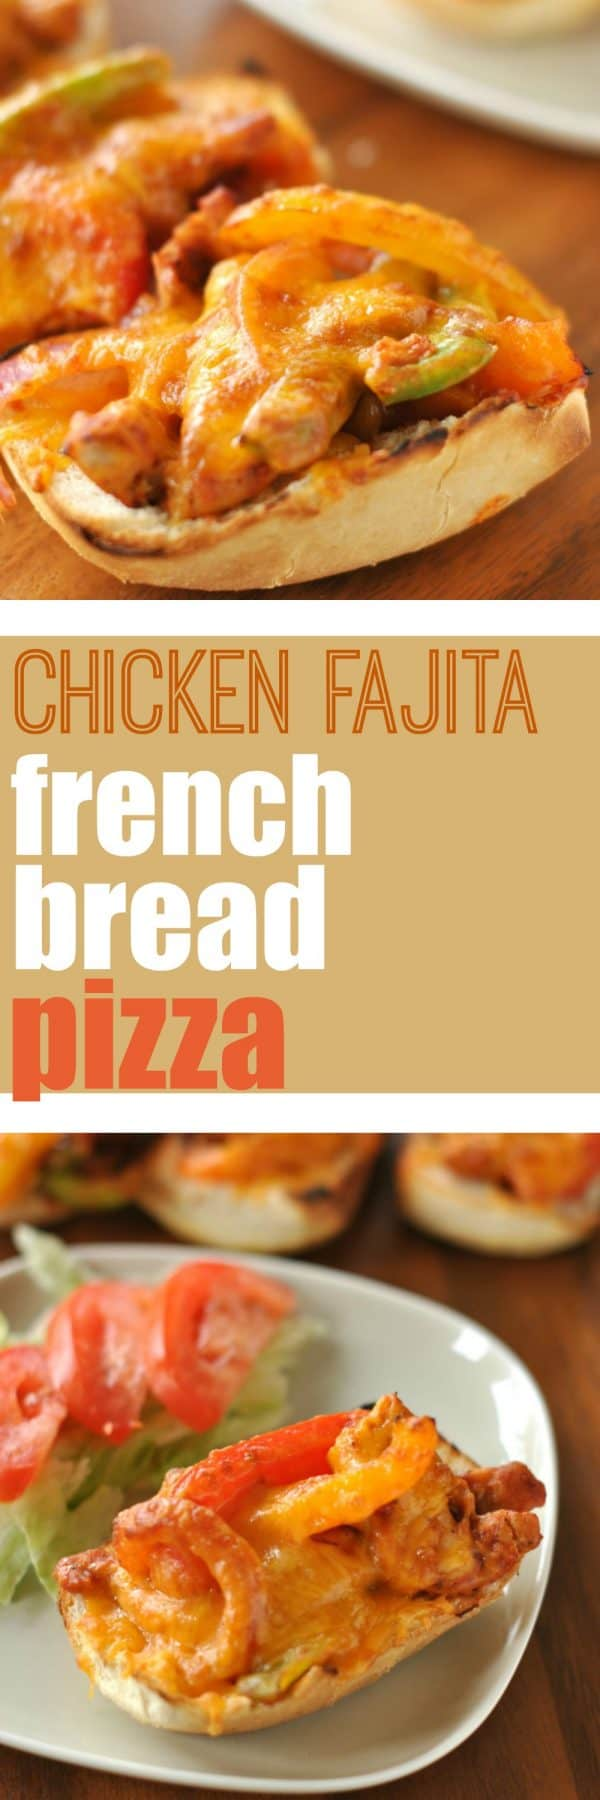 Individual French Bread Pizzas made with Tyson Southwest Pepper Chicken Breasts. Fajitas on a pizza are a perfect match!